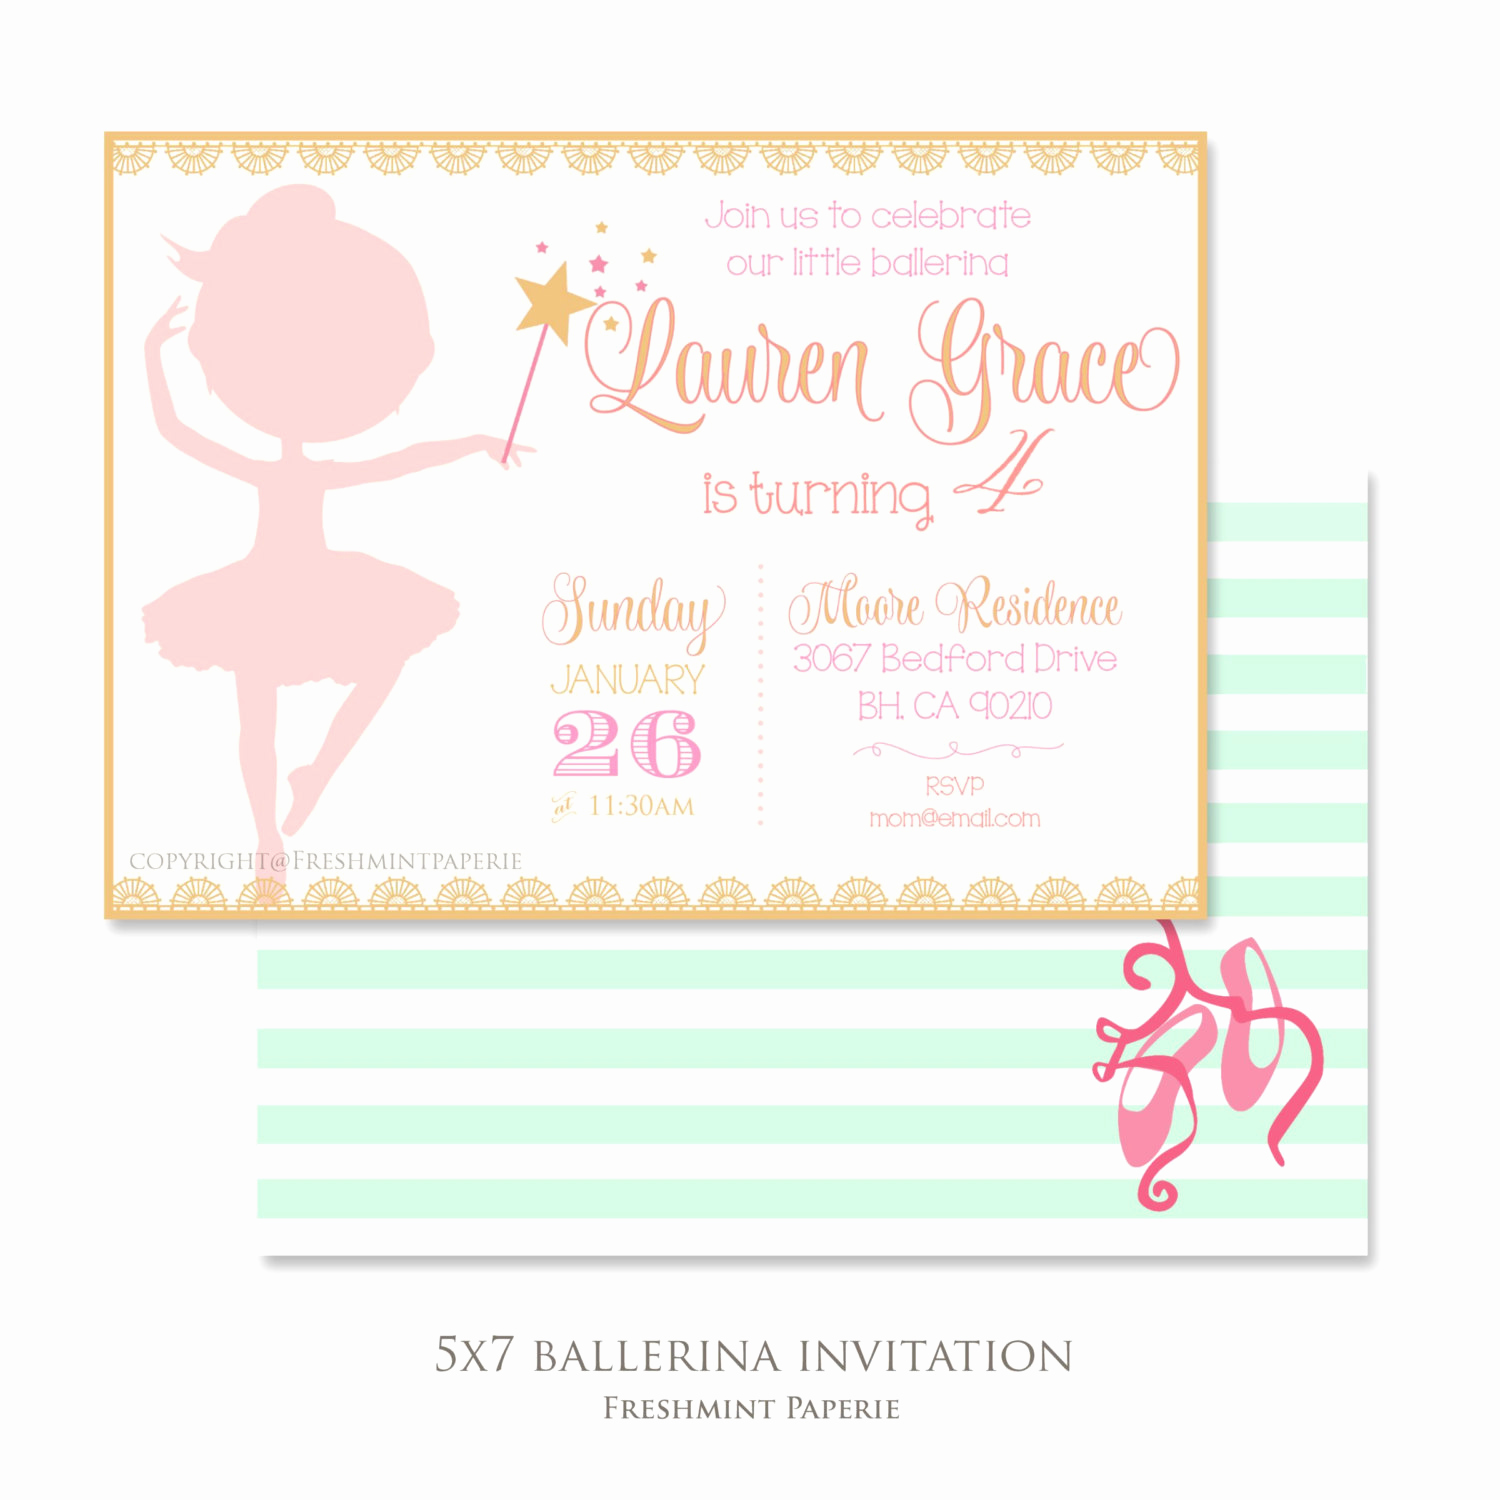 Ballerina Invitation Template Free Awesome Printable Invitations Ballerina Invitation Ballet